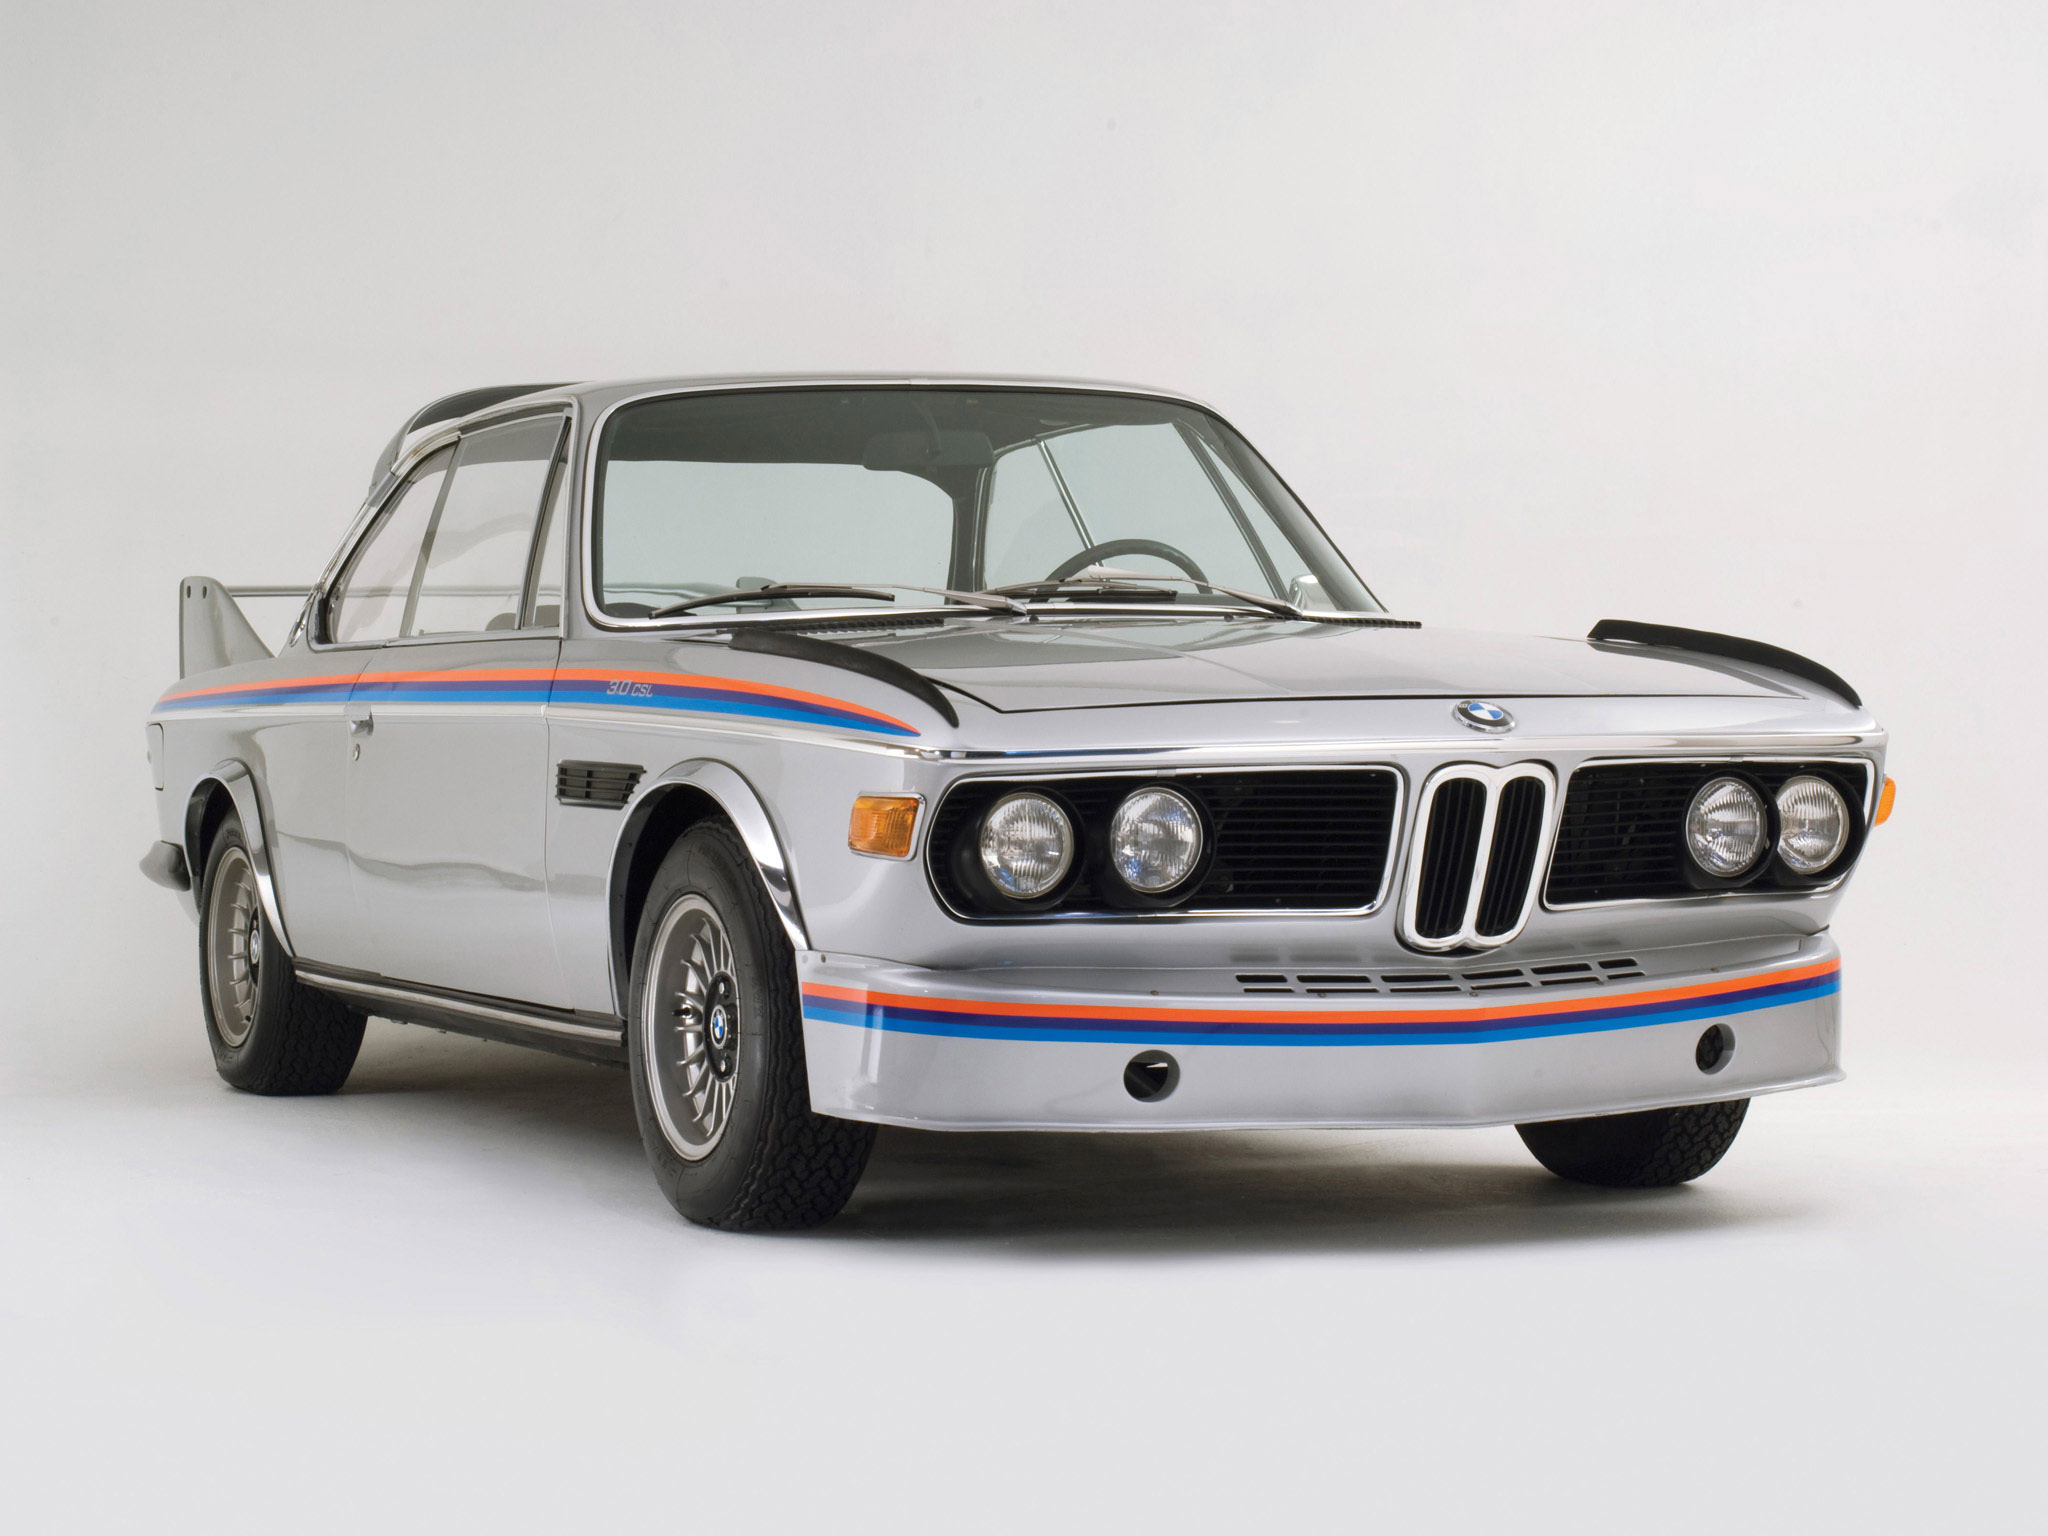 bmw 3 0 csl e9 1971 1975 bmw 3 0 csl e9 1971 1975 photo 03 car in pictures car photo gallery. Black Bedroom Furniture Sets. Home Design Ideas